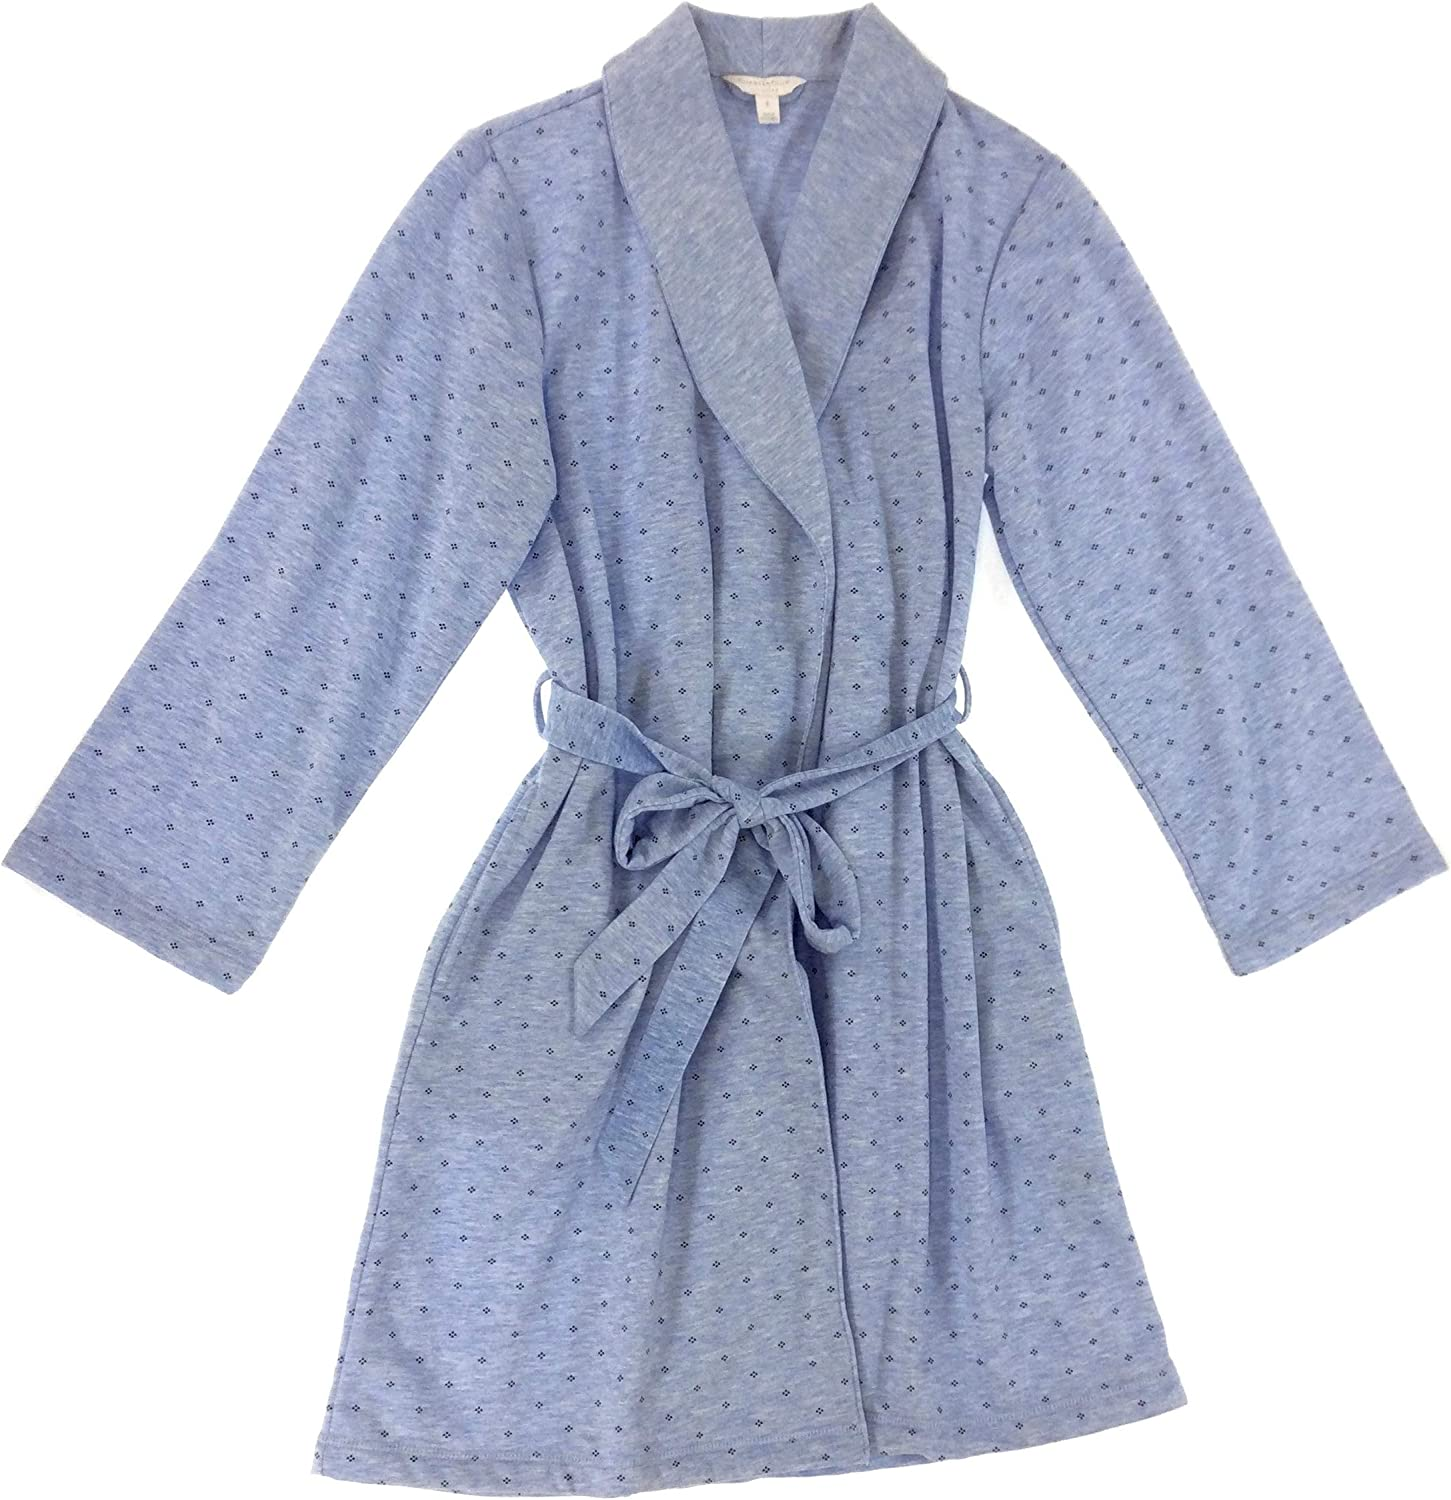 Popular shop is the lowest price challenge Charter Miami Mall Club Medium Wrap Robes Weight